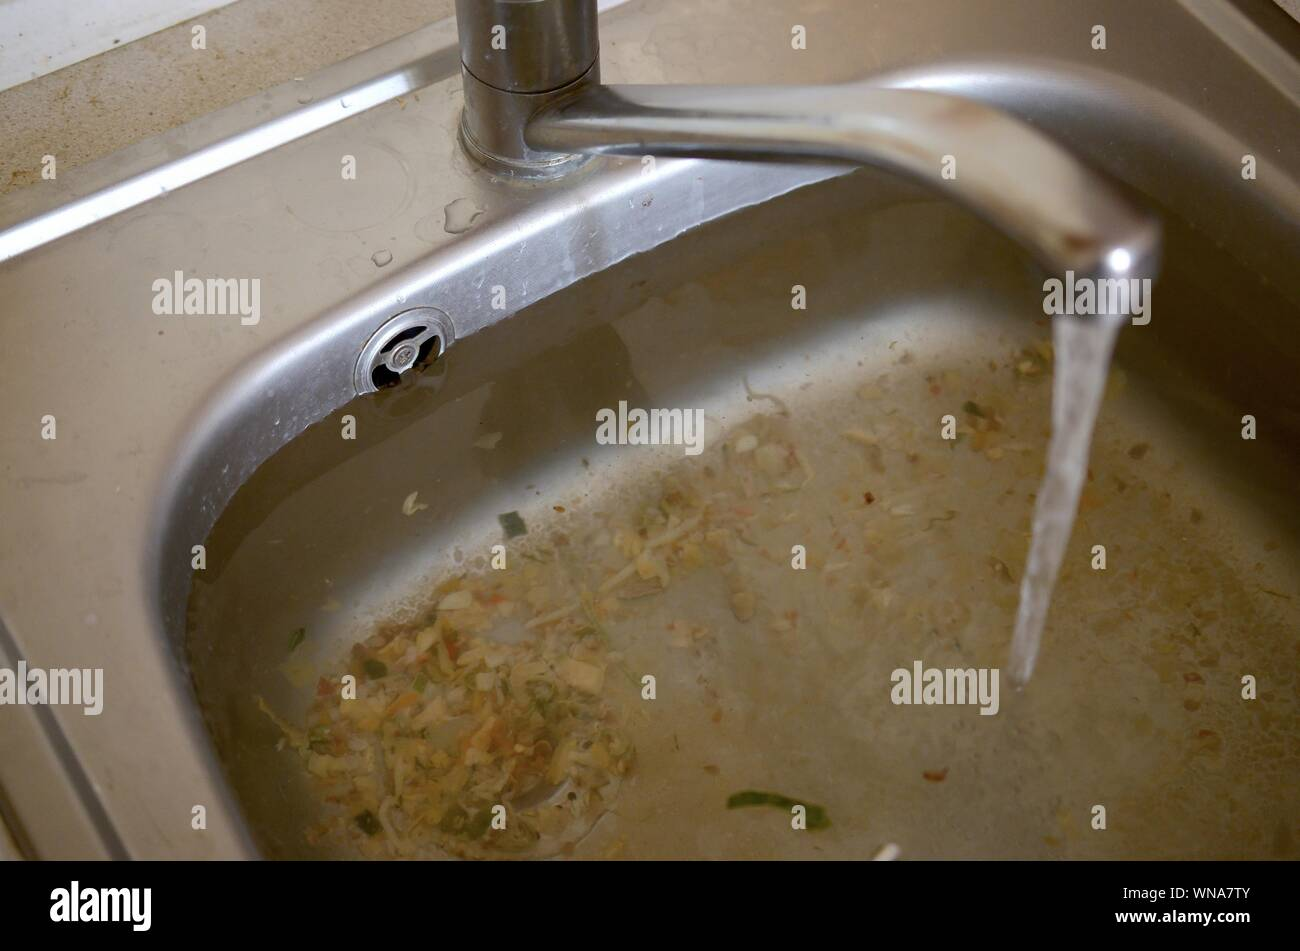 Clogged Drain High Resolution Stock Photography And Images Alamy